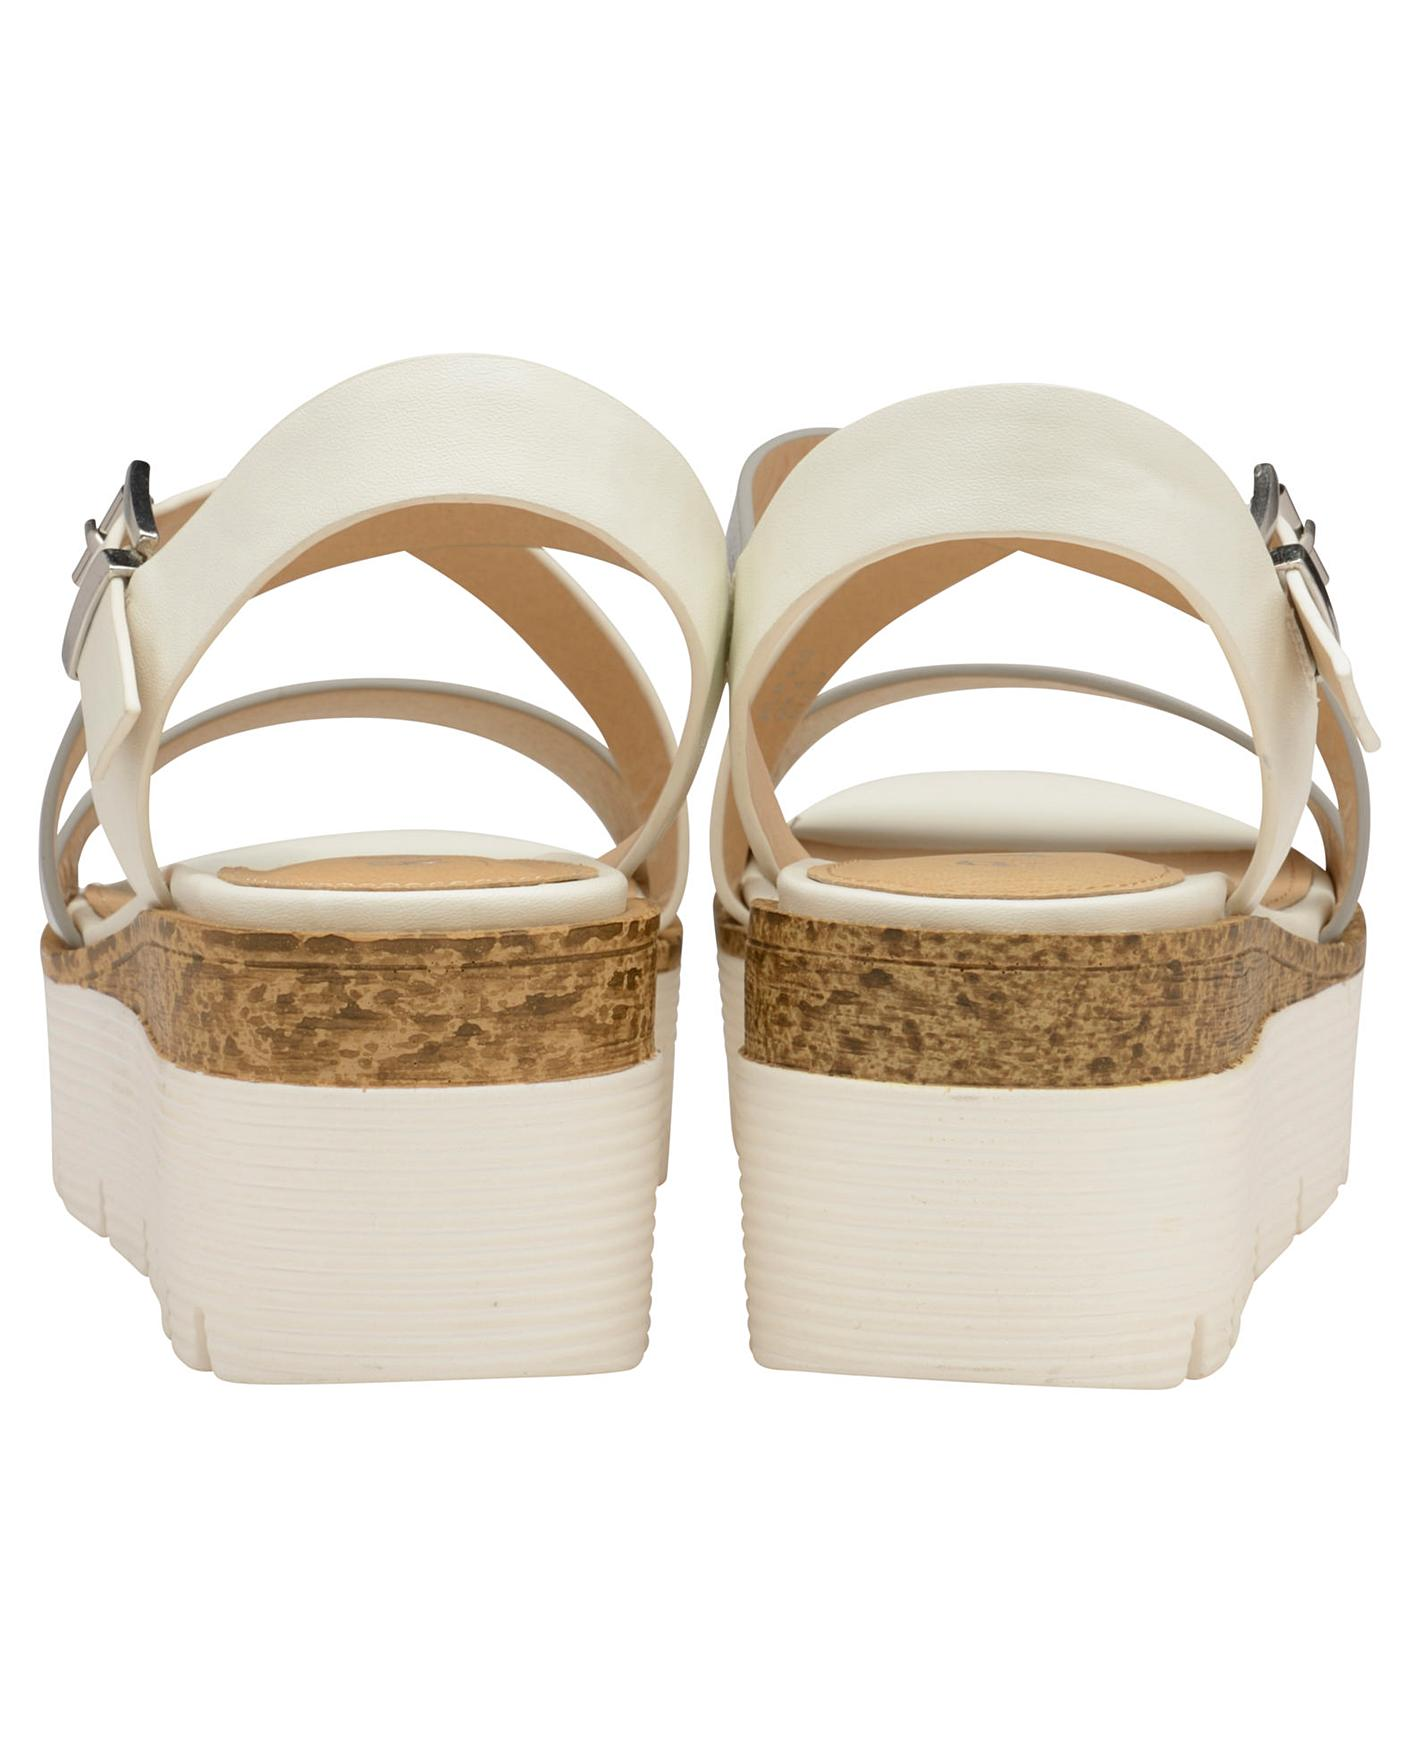 3c3a591e37e2 Description. This item is despatched direct from the supplier. Ravel Layton  Flatform Wedge Sandals ...